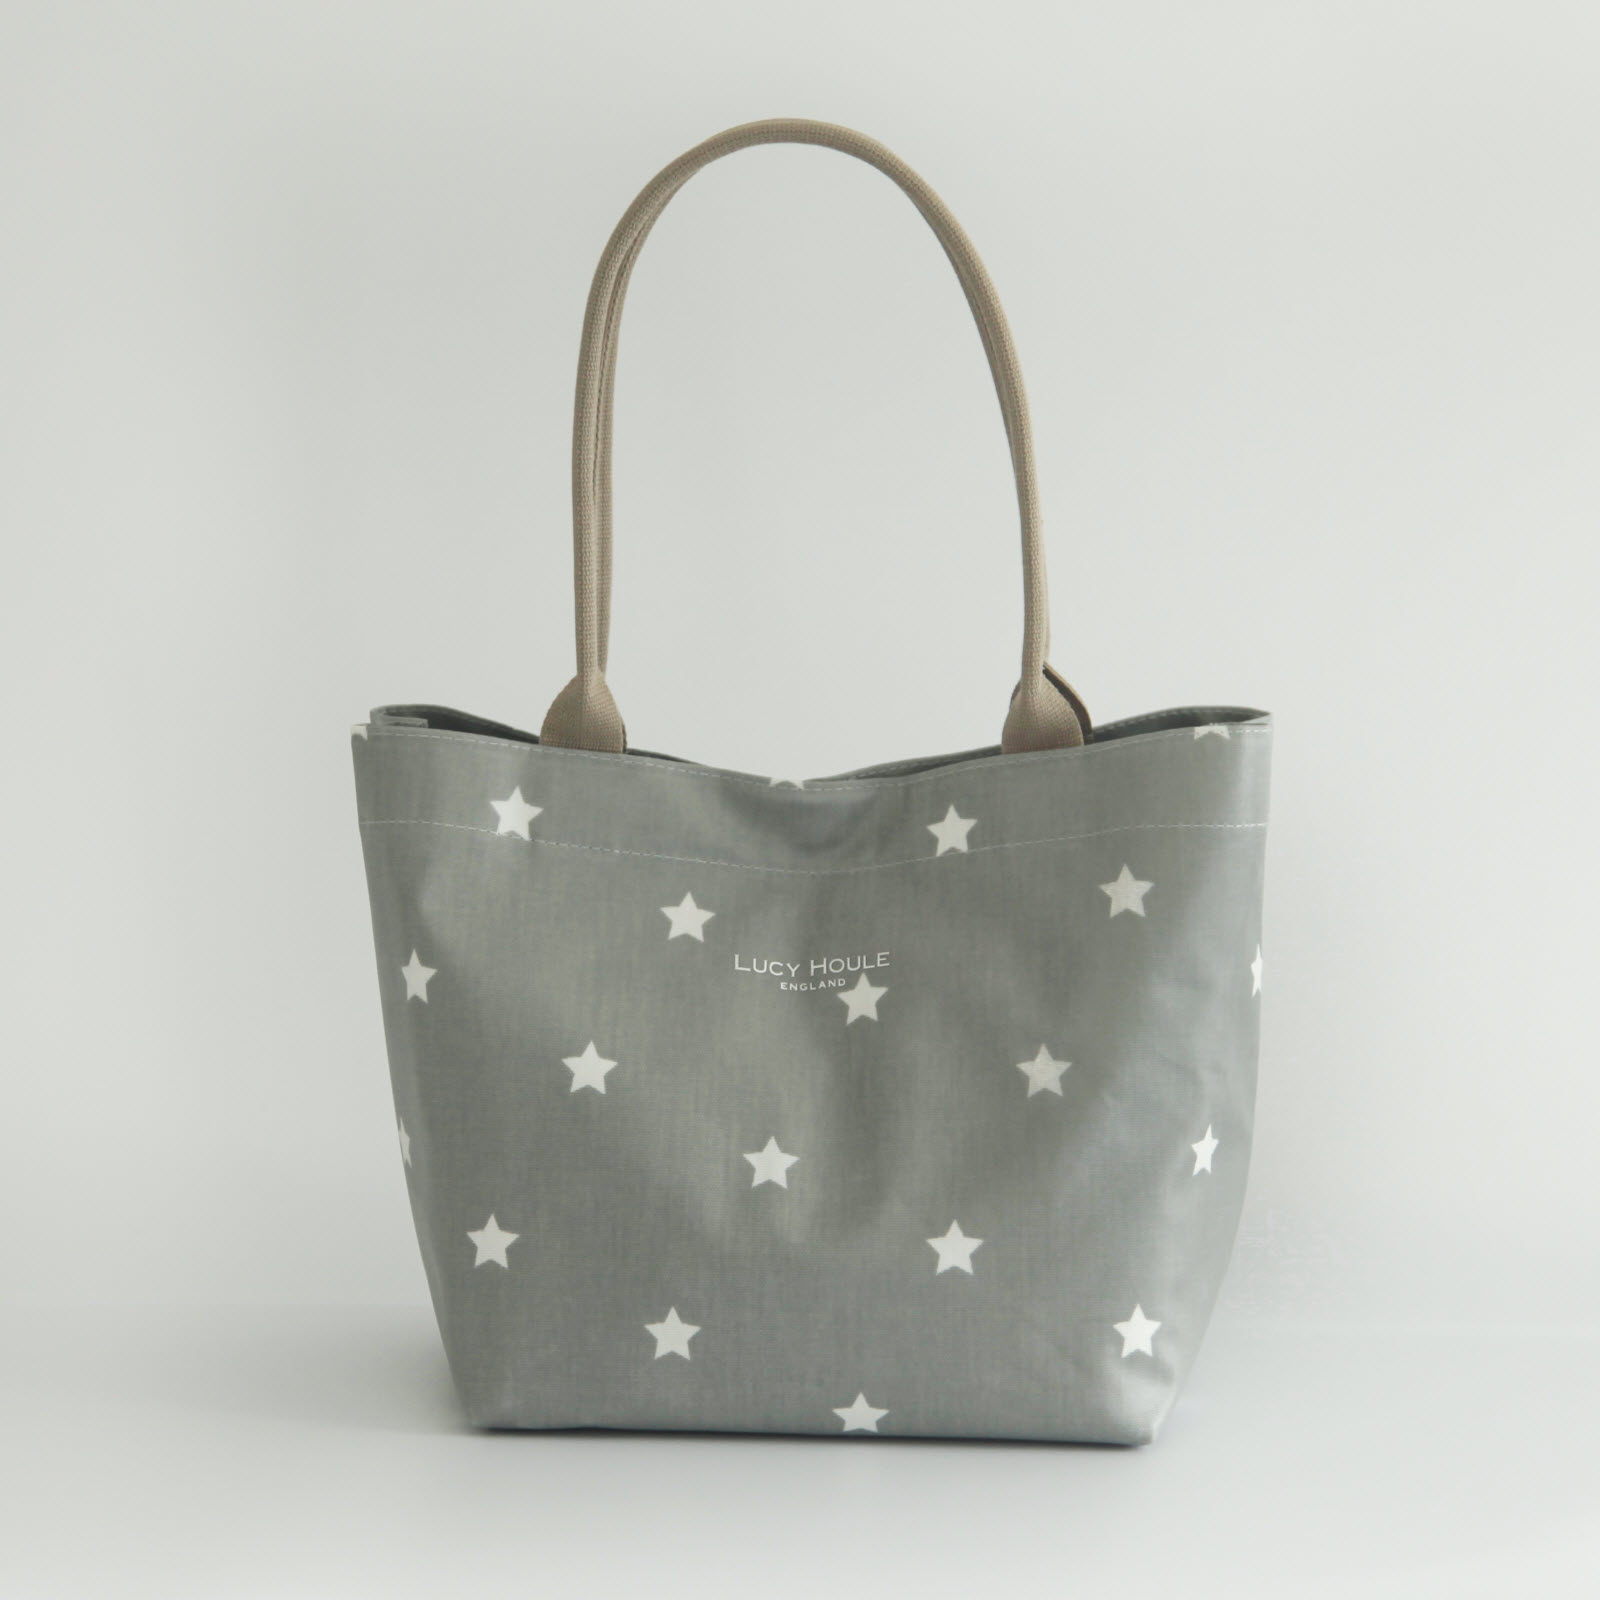 Grey & White Star Small Tote Bag with Taupe Handles